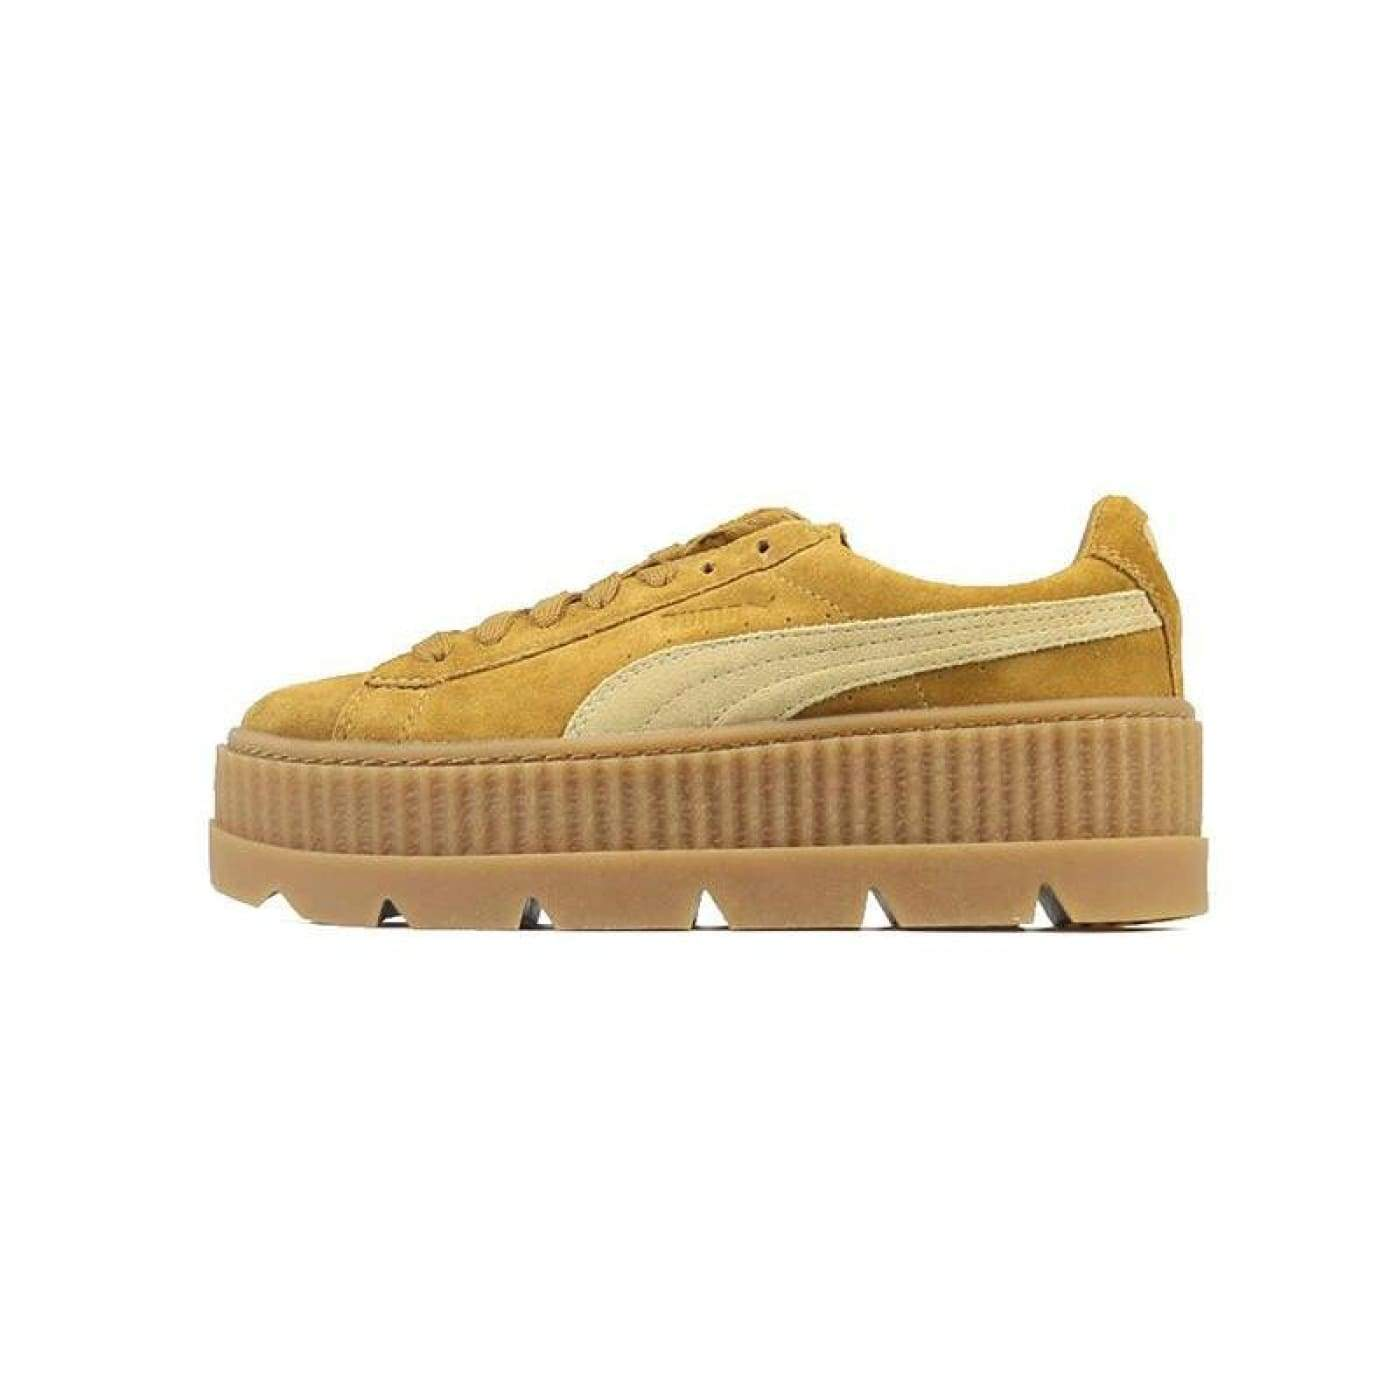 new styles c2b17 2ecc3 Funky Town Clothing - New Arrival Official Puma x Fenty ...